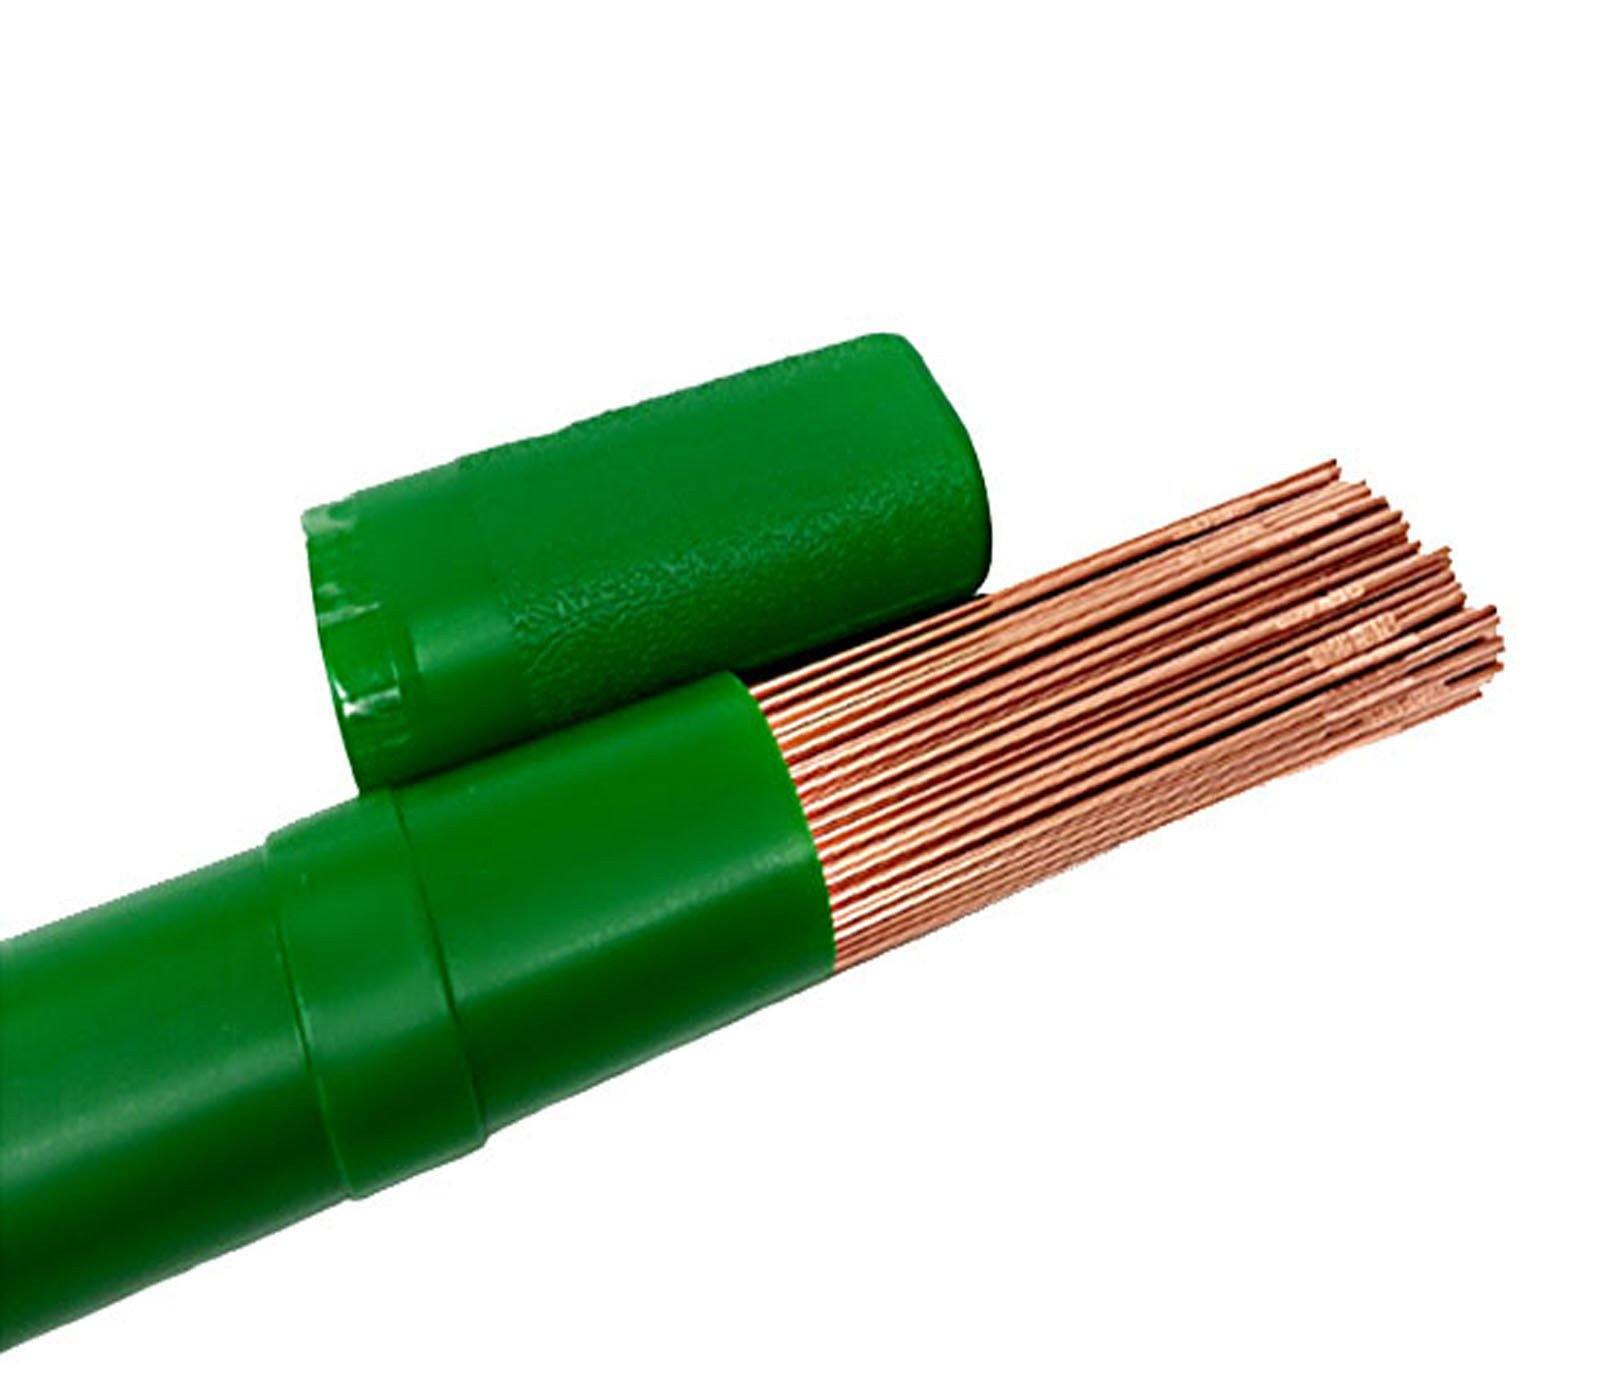 ER70S-6 0.045'' - 1/16'' - 3/32'' - 1/8'' X 36'' Tig Welding Wire rod 10 lb (1/16'') by HYWELD